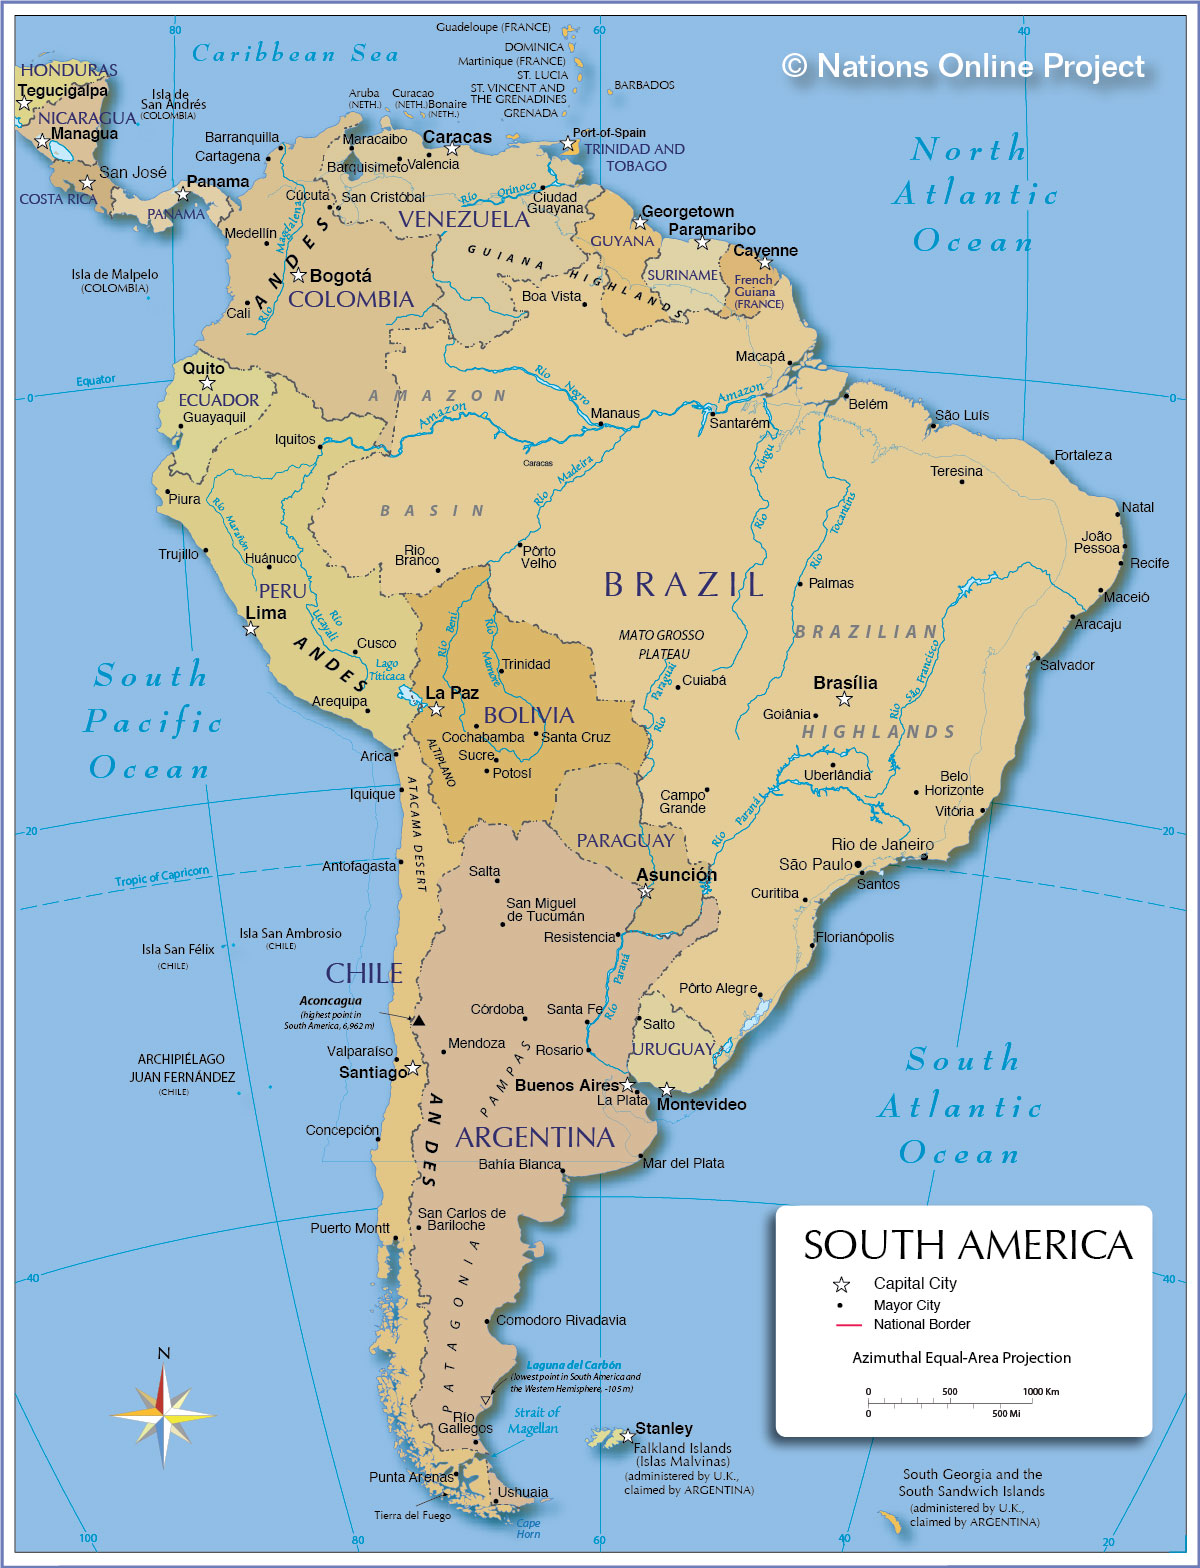 Argentina paraguay brazil boundaries in dating 9